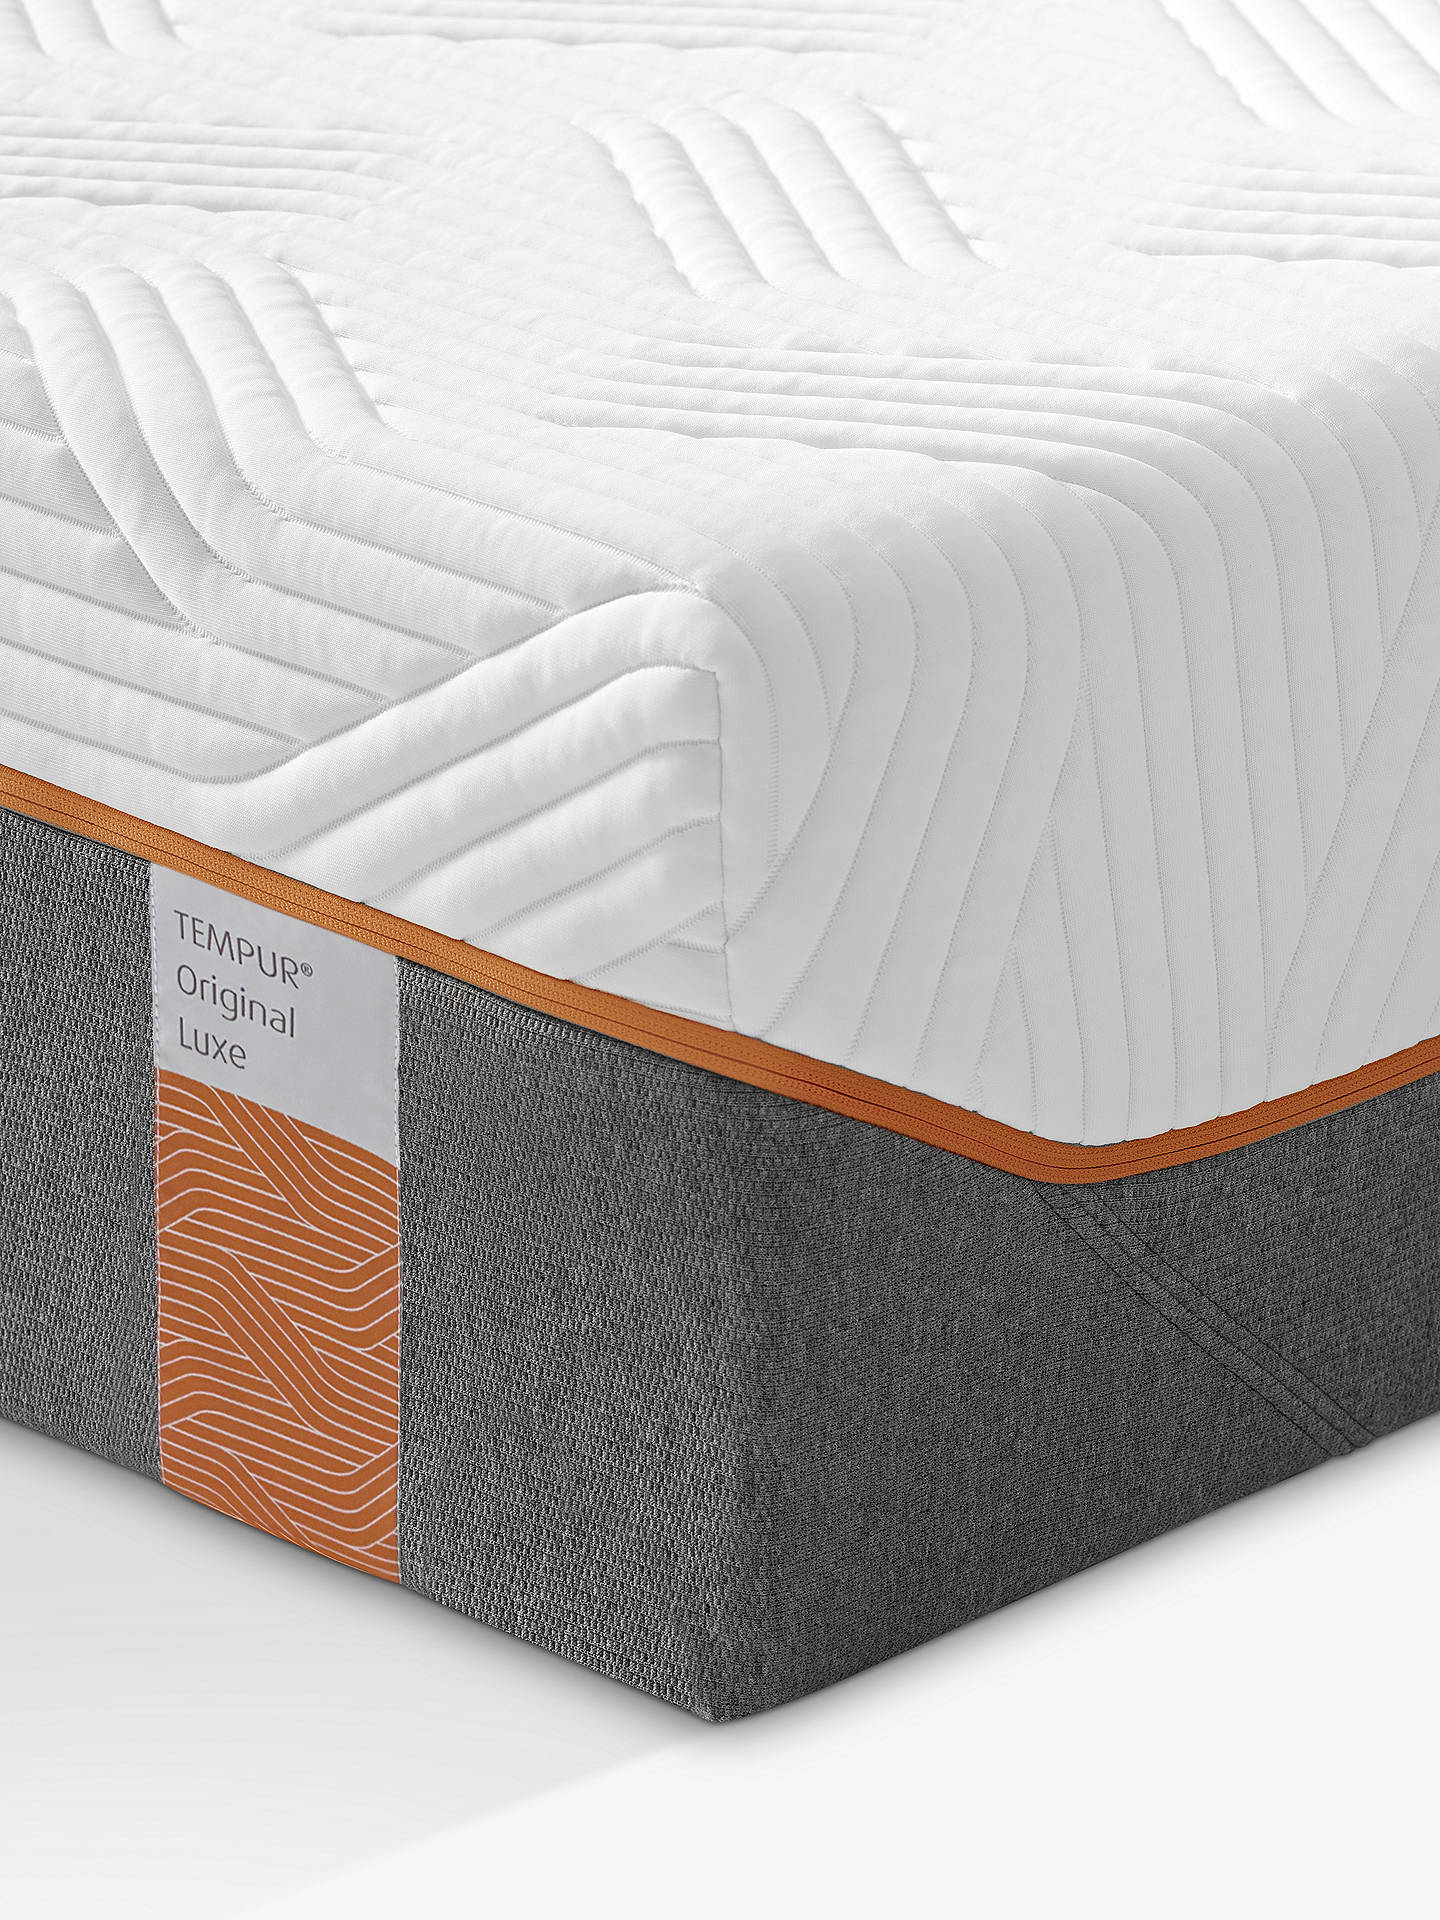 Buy Tempur Original Luxe Memory Foam Mattress, Medium Tension, Extra Long Single Online at johnlewis.com